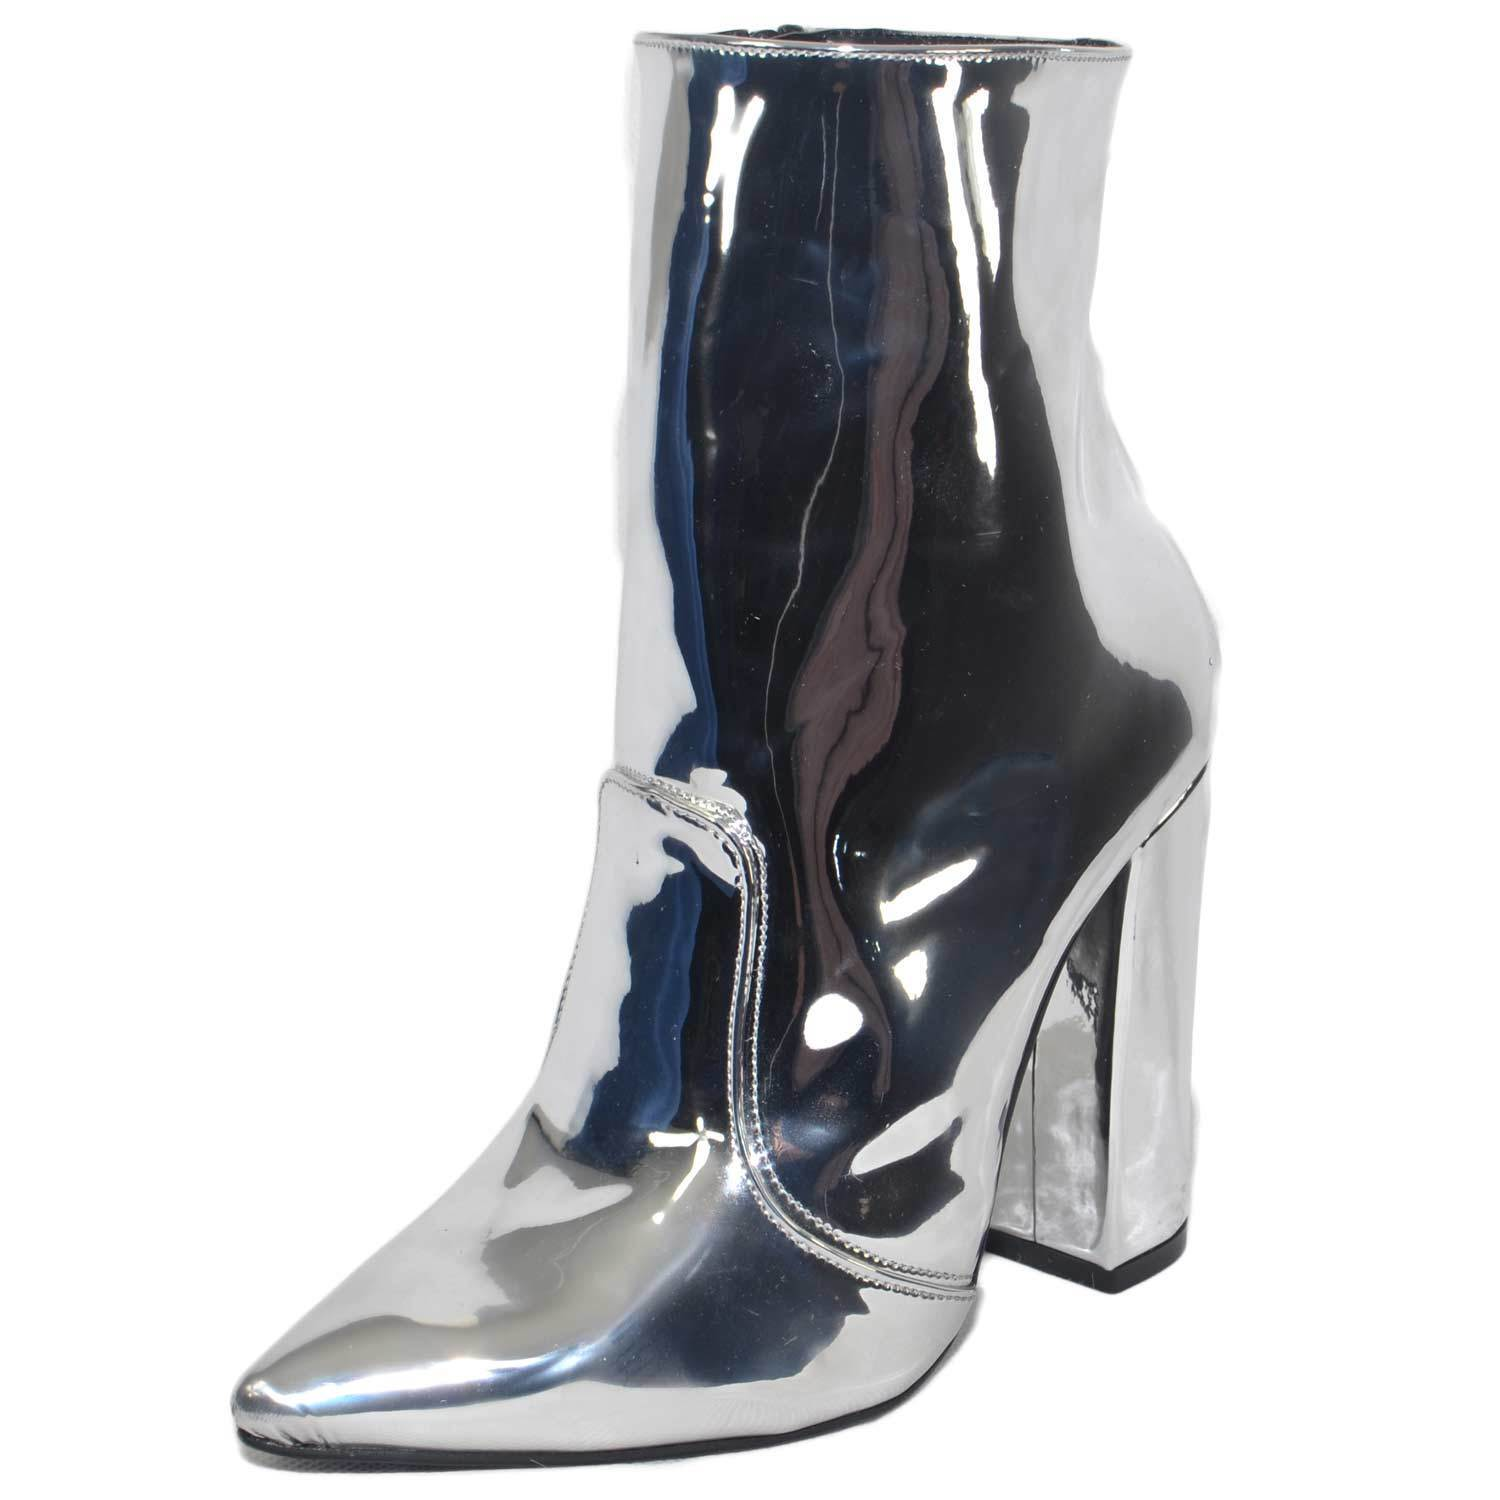 Schuhe Damens TRONCHETTO PUNTA SPECCHIATO ARGENTO MADE IN ITALY GLAMOUR TACC MODA TACC GLAMOUR af2656